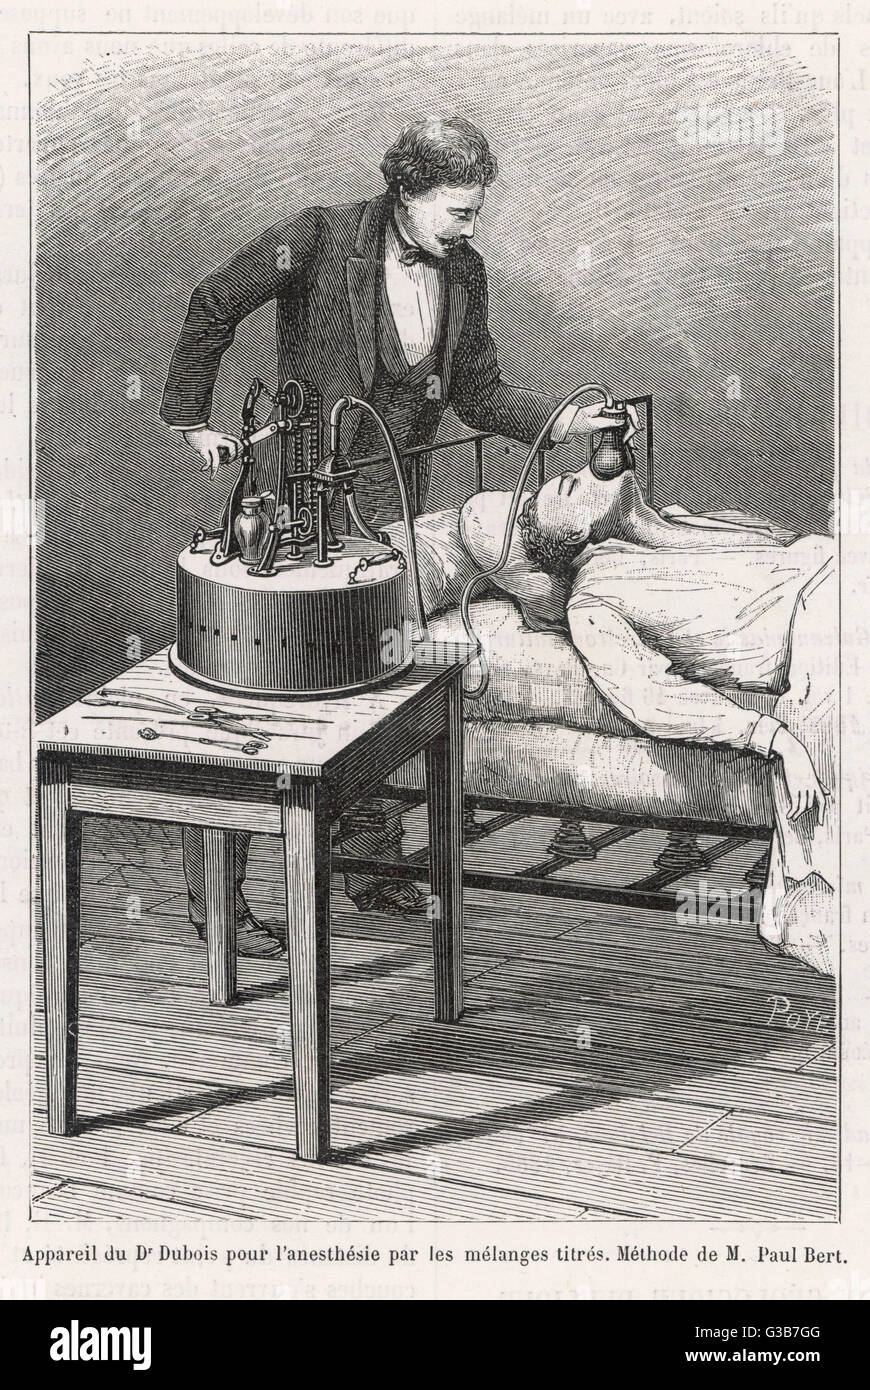 Dr. Paul Bert's method of  using compressed nitrous oxide         Date: 1885 - Stock Image